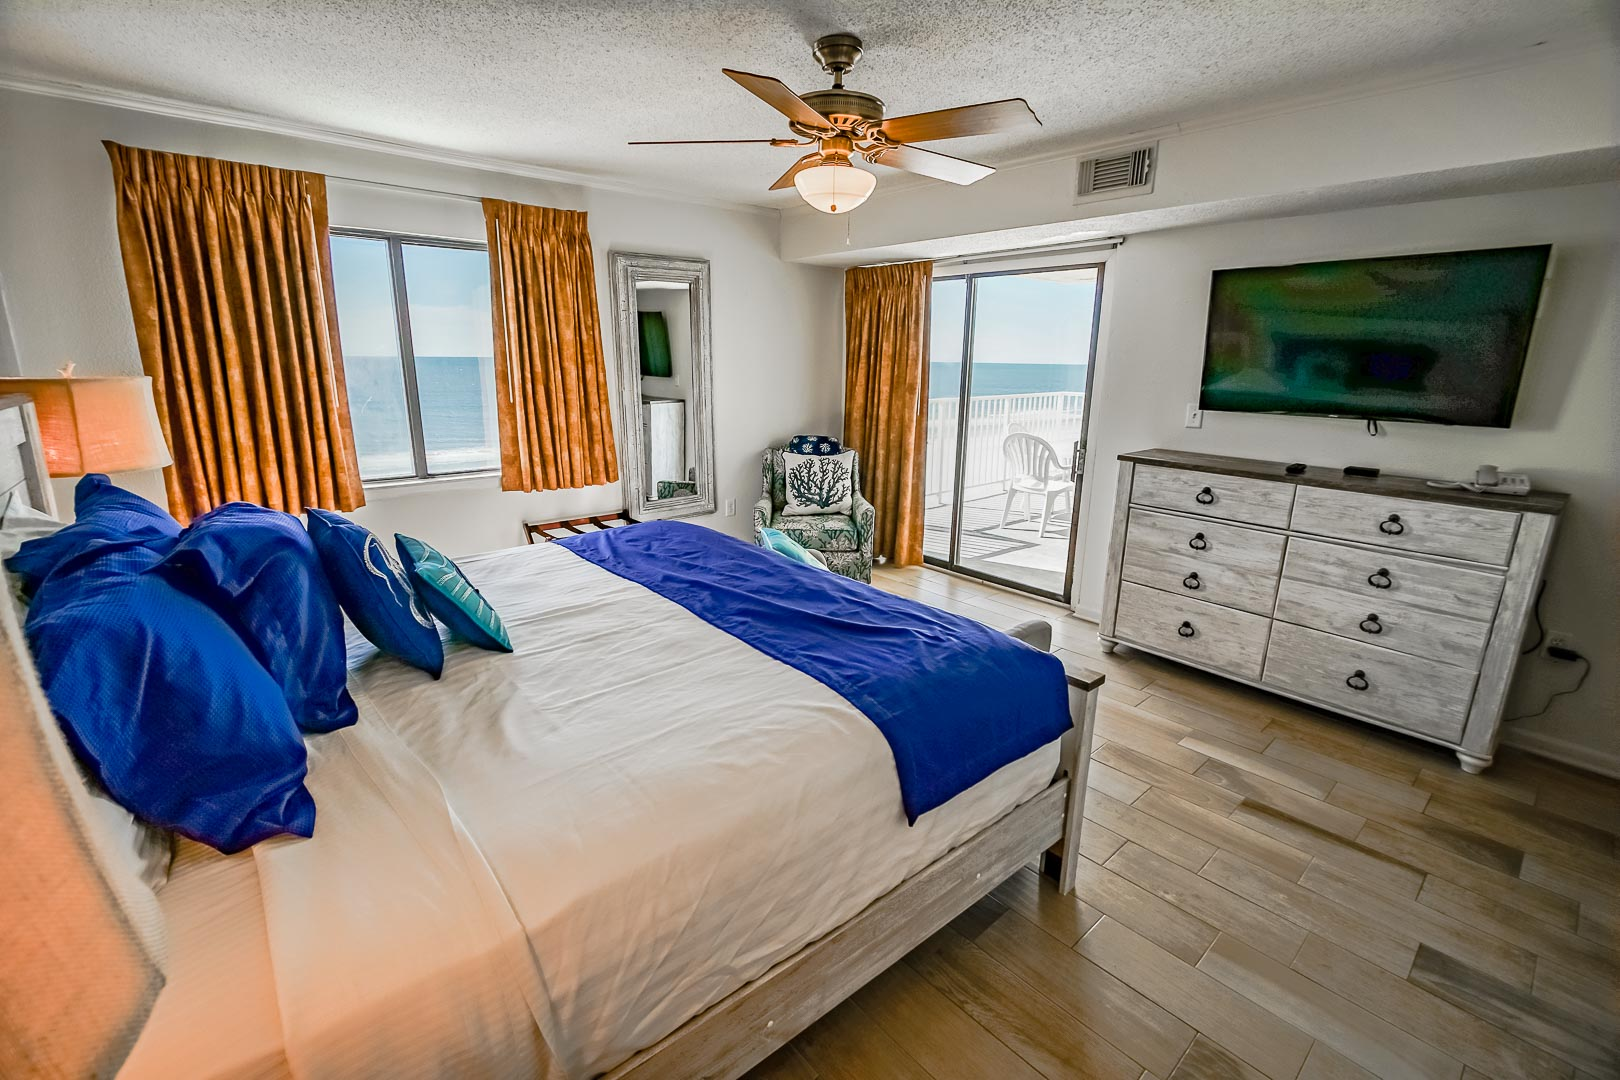 A beautiful master bedroom with an ocean view at VRI's Shoreline Towers in Gulf Shores, Alabama.